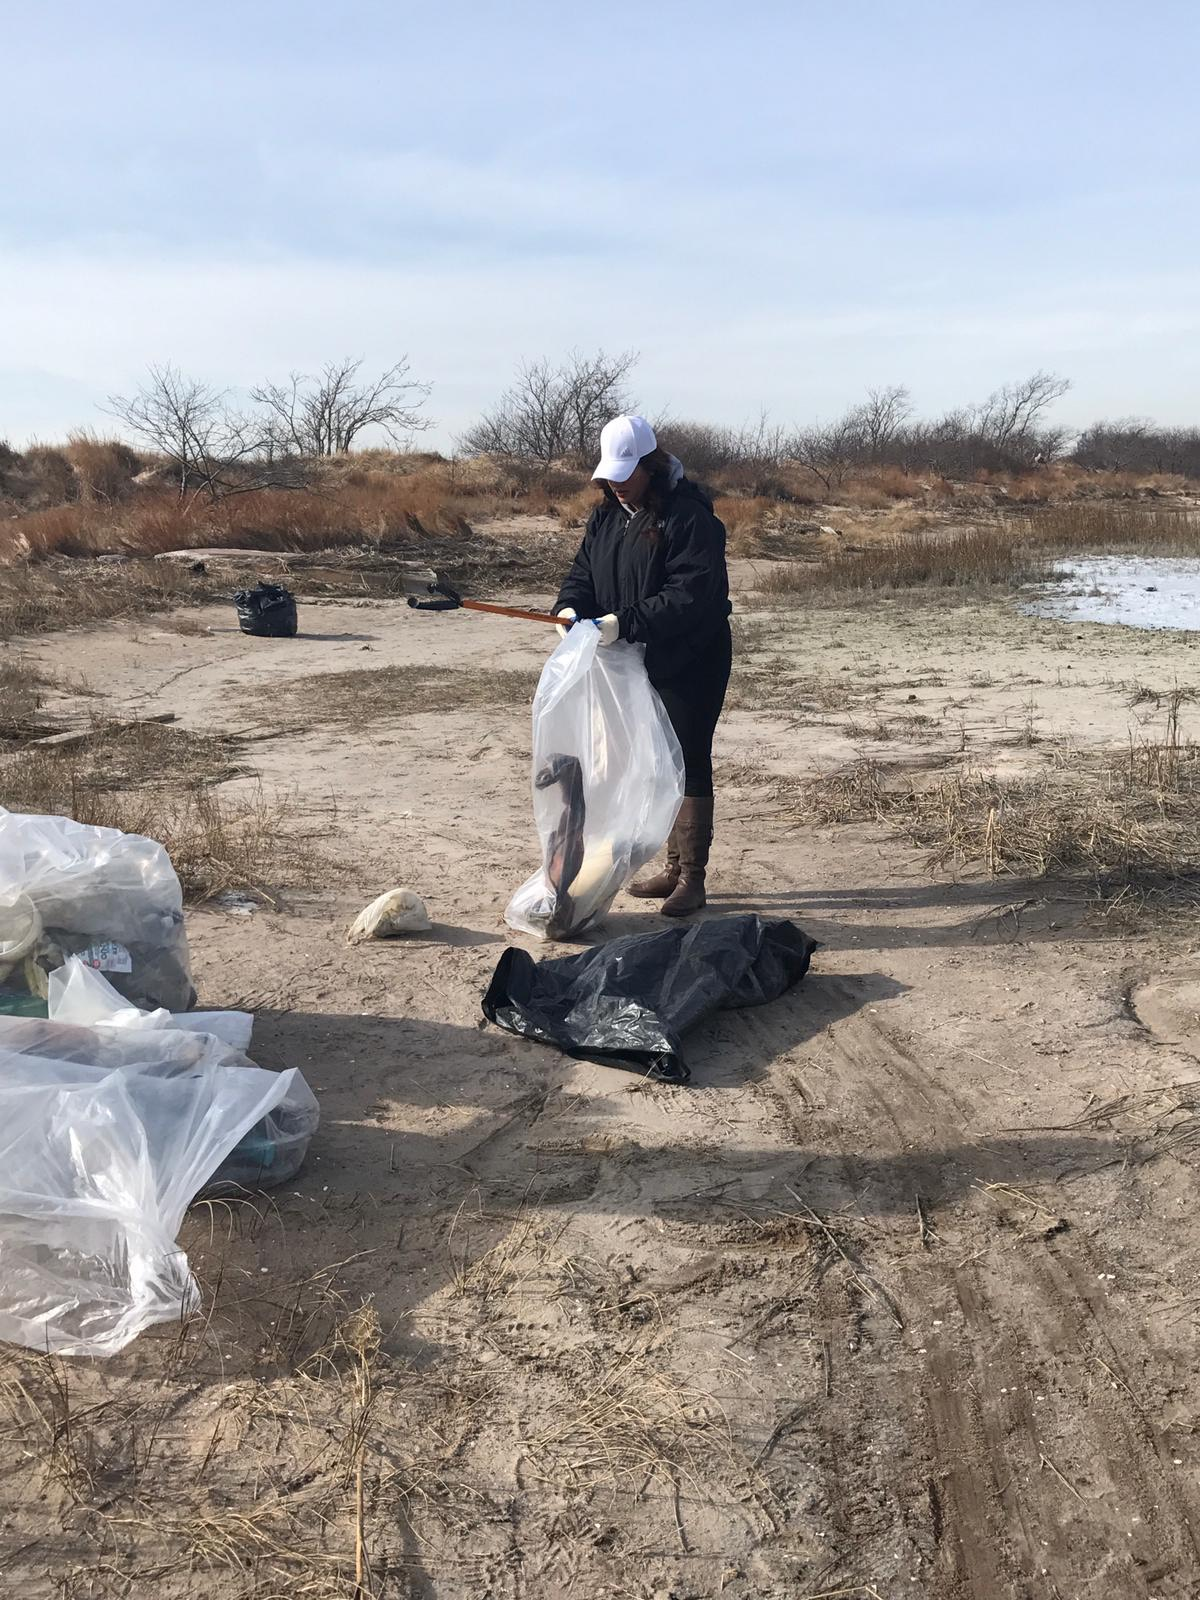 World Wetlands Day 2019 Plumb Beach Clean-up in Conjunction with the Jamaica Bay Rockaway Parks Conservation, American Littoral Society and National Parks Conservation.